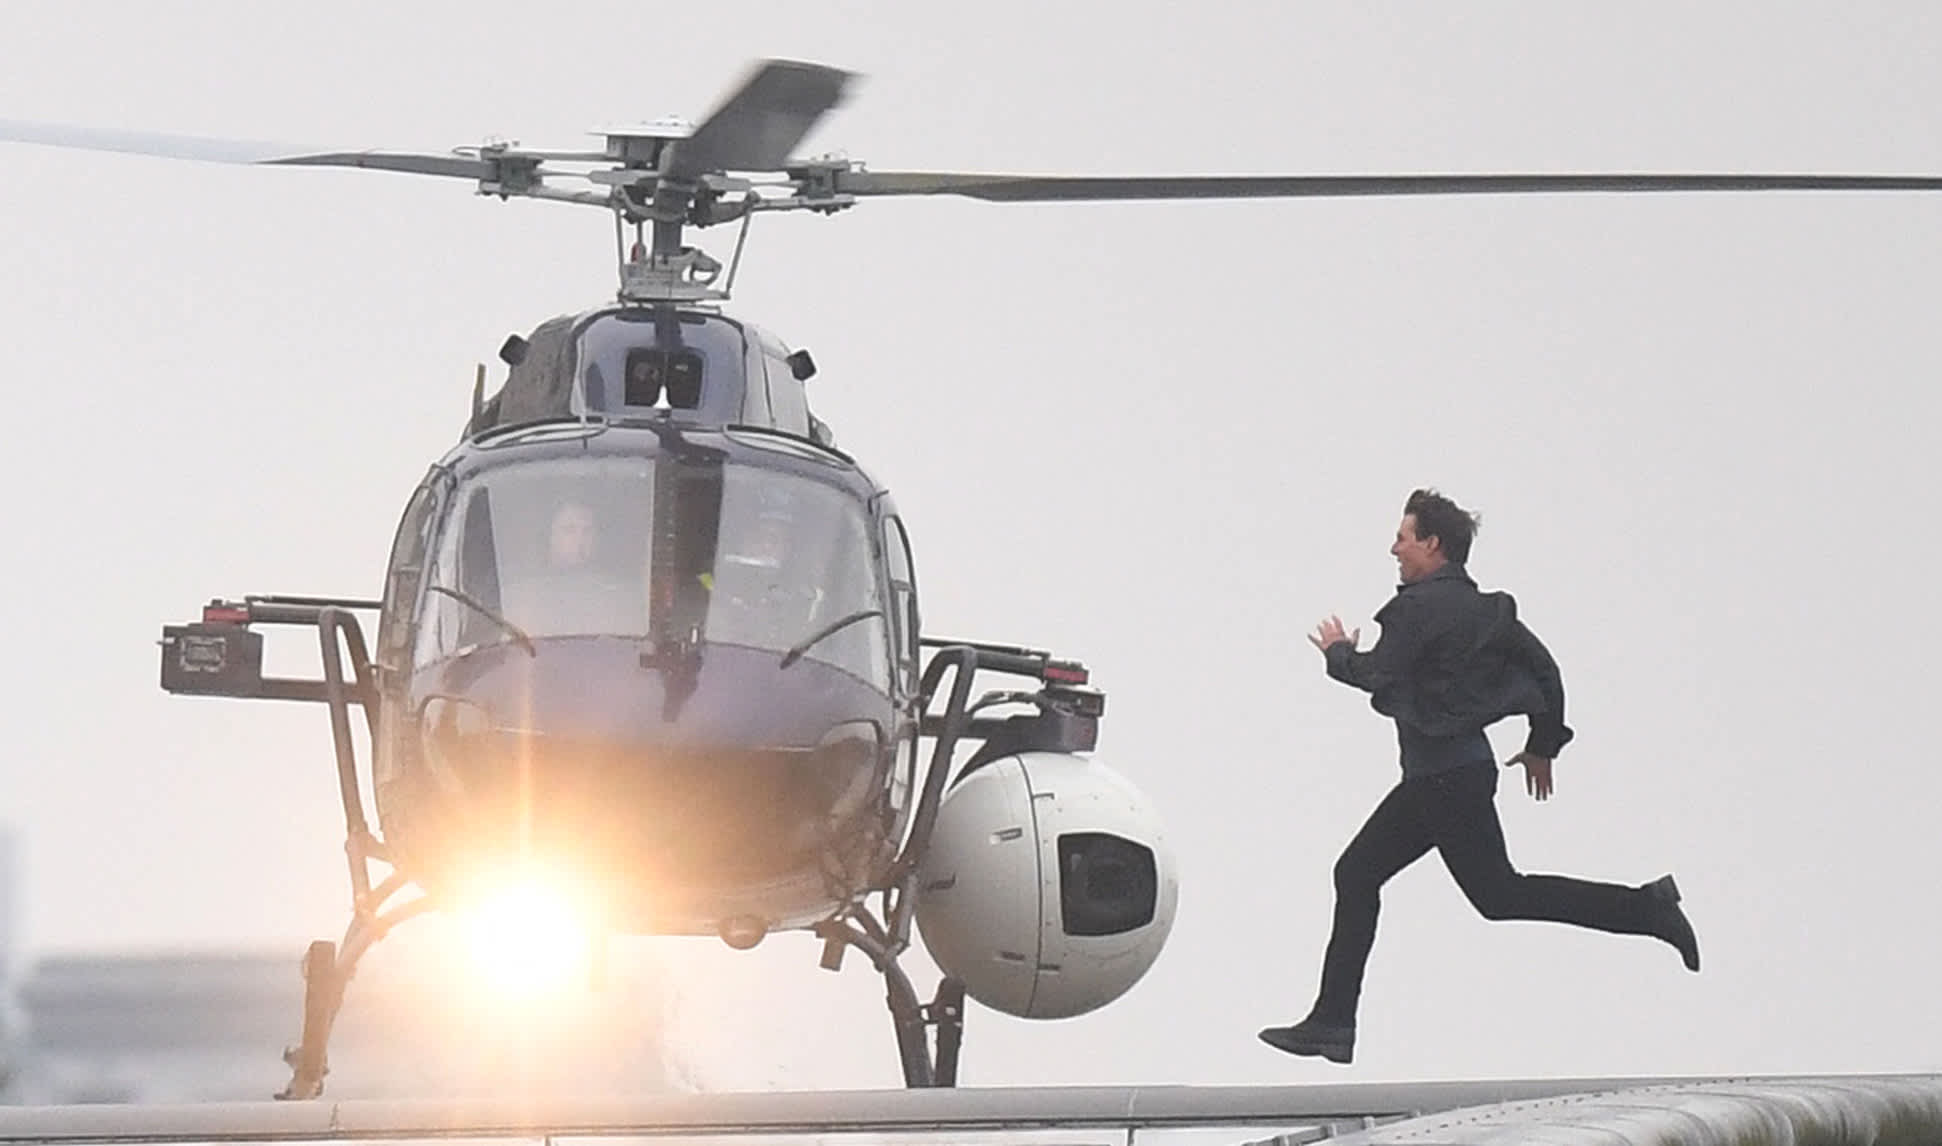 Impossible 7′ aims to restart film production in September